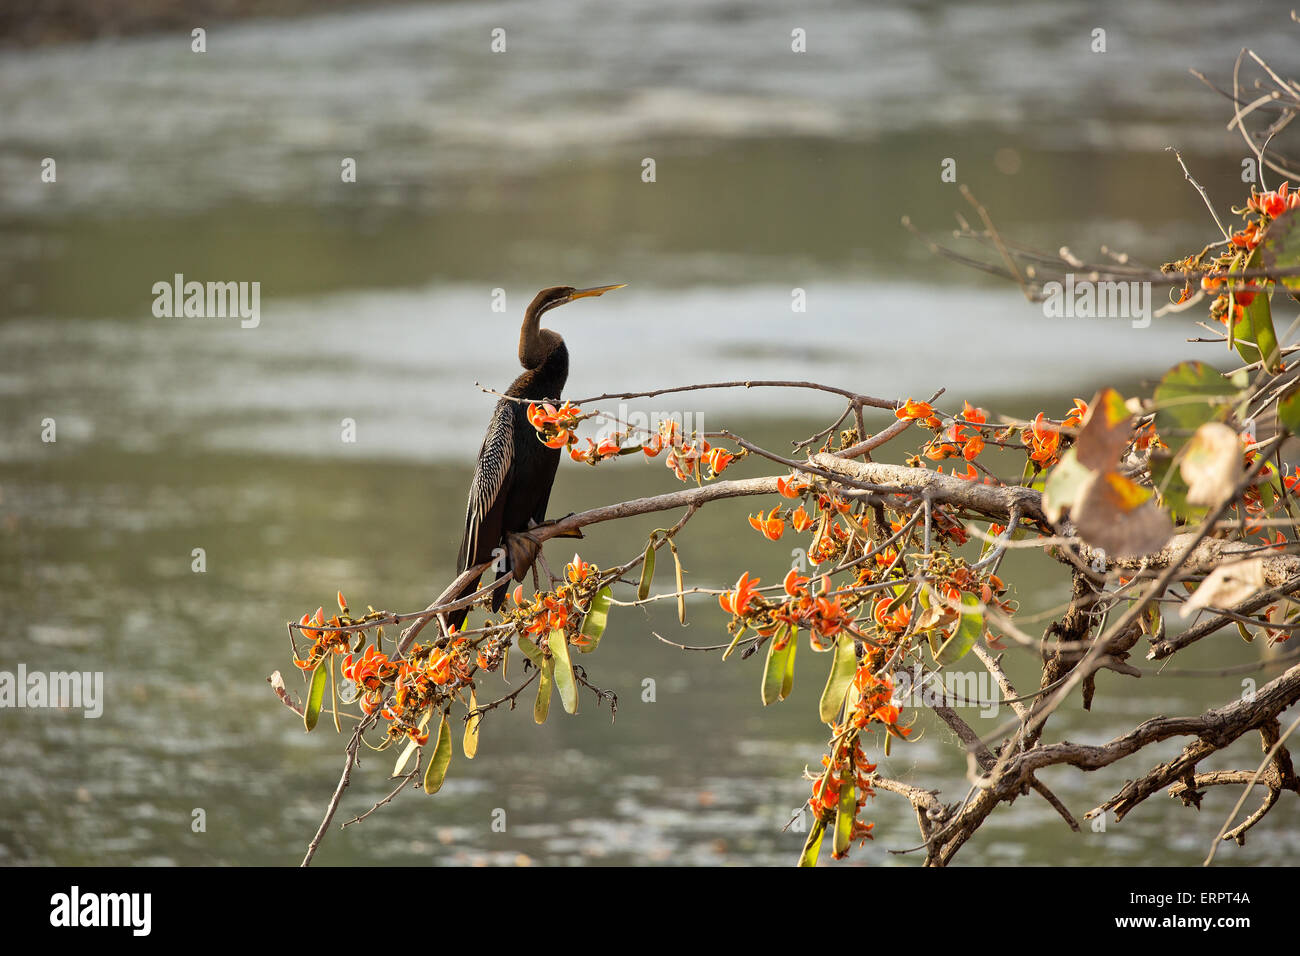 A snake bird sitting on flame of the forest - Stock Image